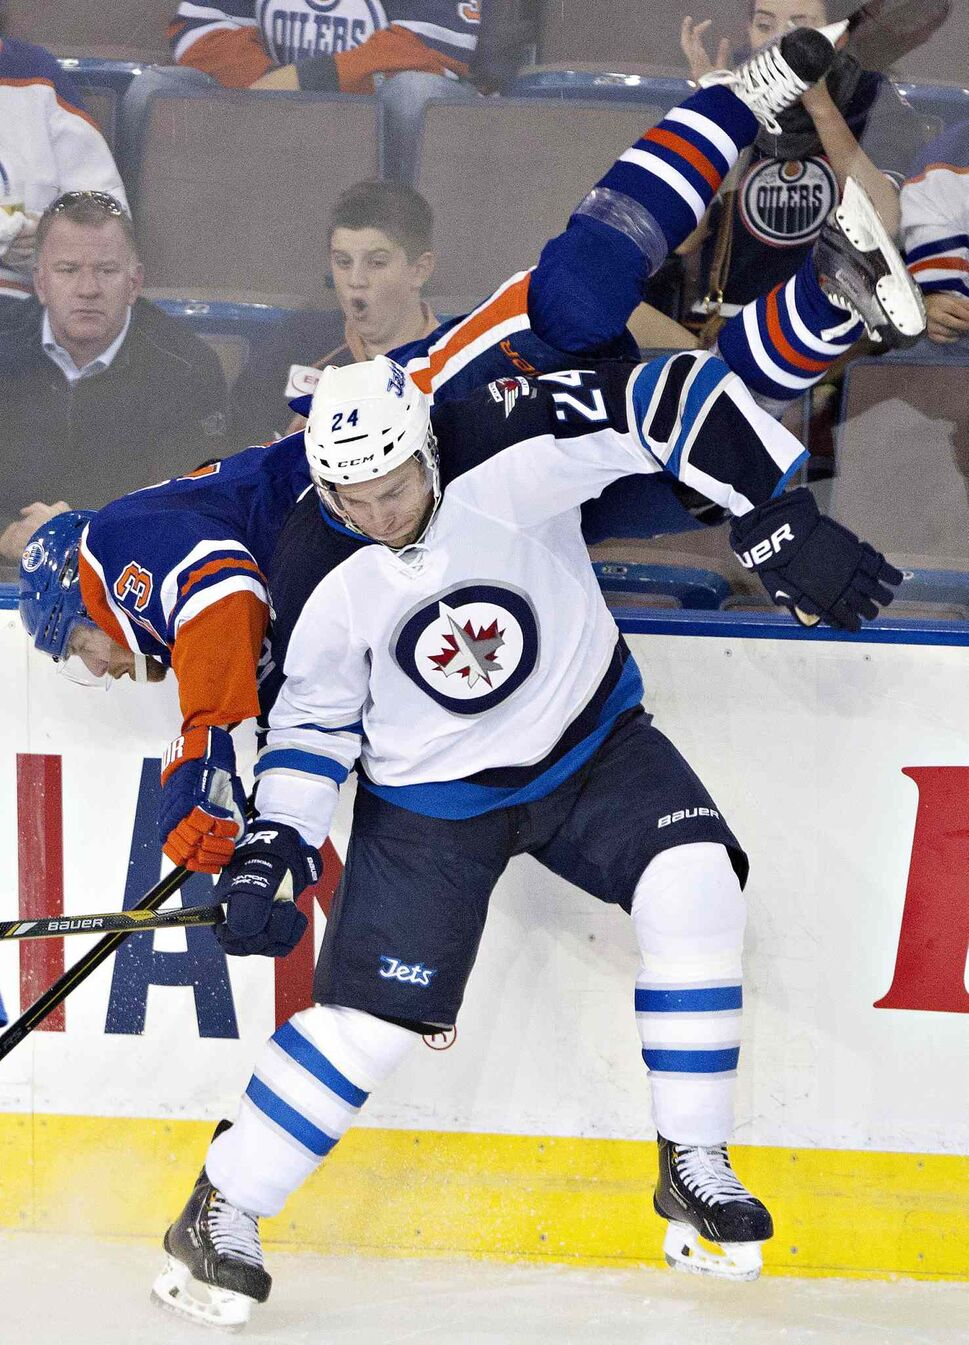 Winnipeg Jets defenceman Grant Clitsome checks Edmonton Oilers Linus Omark during the third period. (Jason Franson / The Canadian Press)